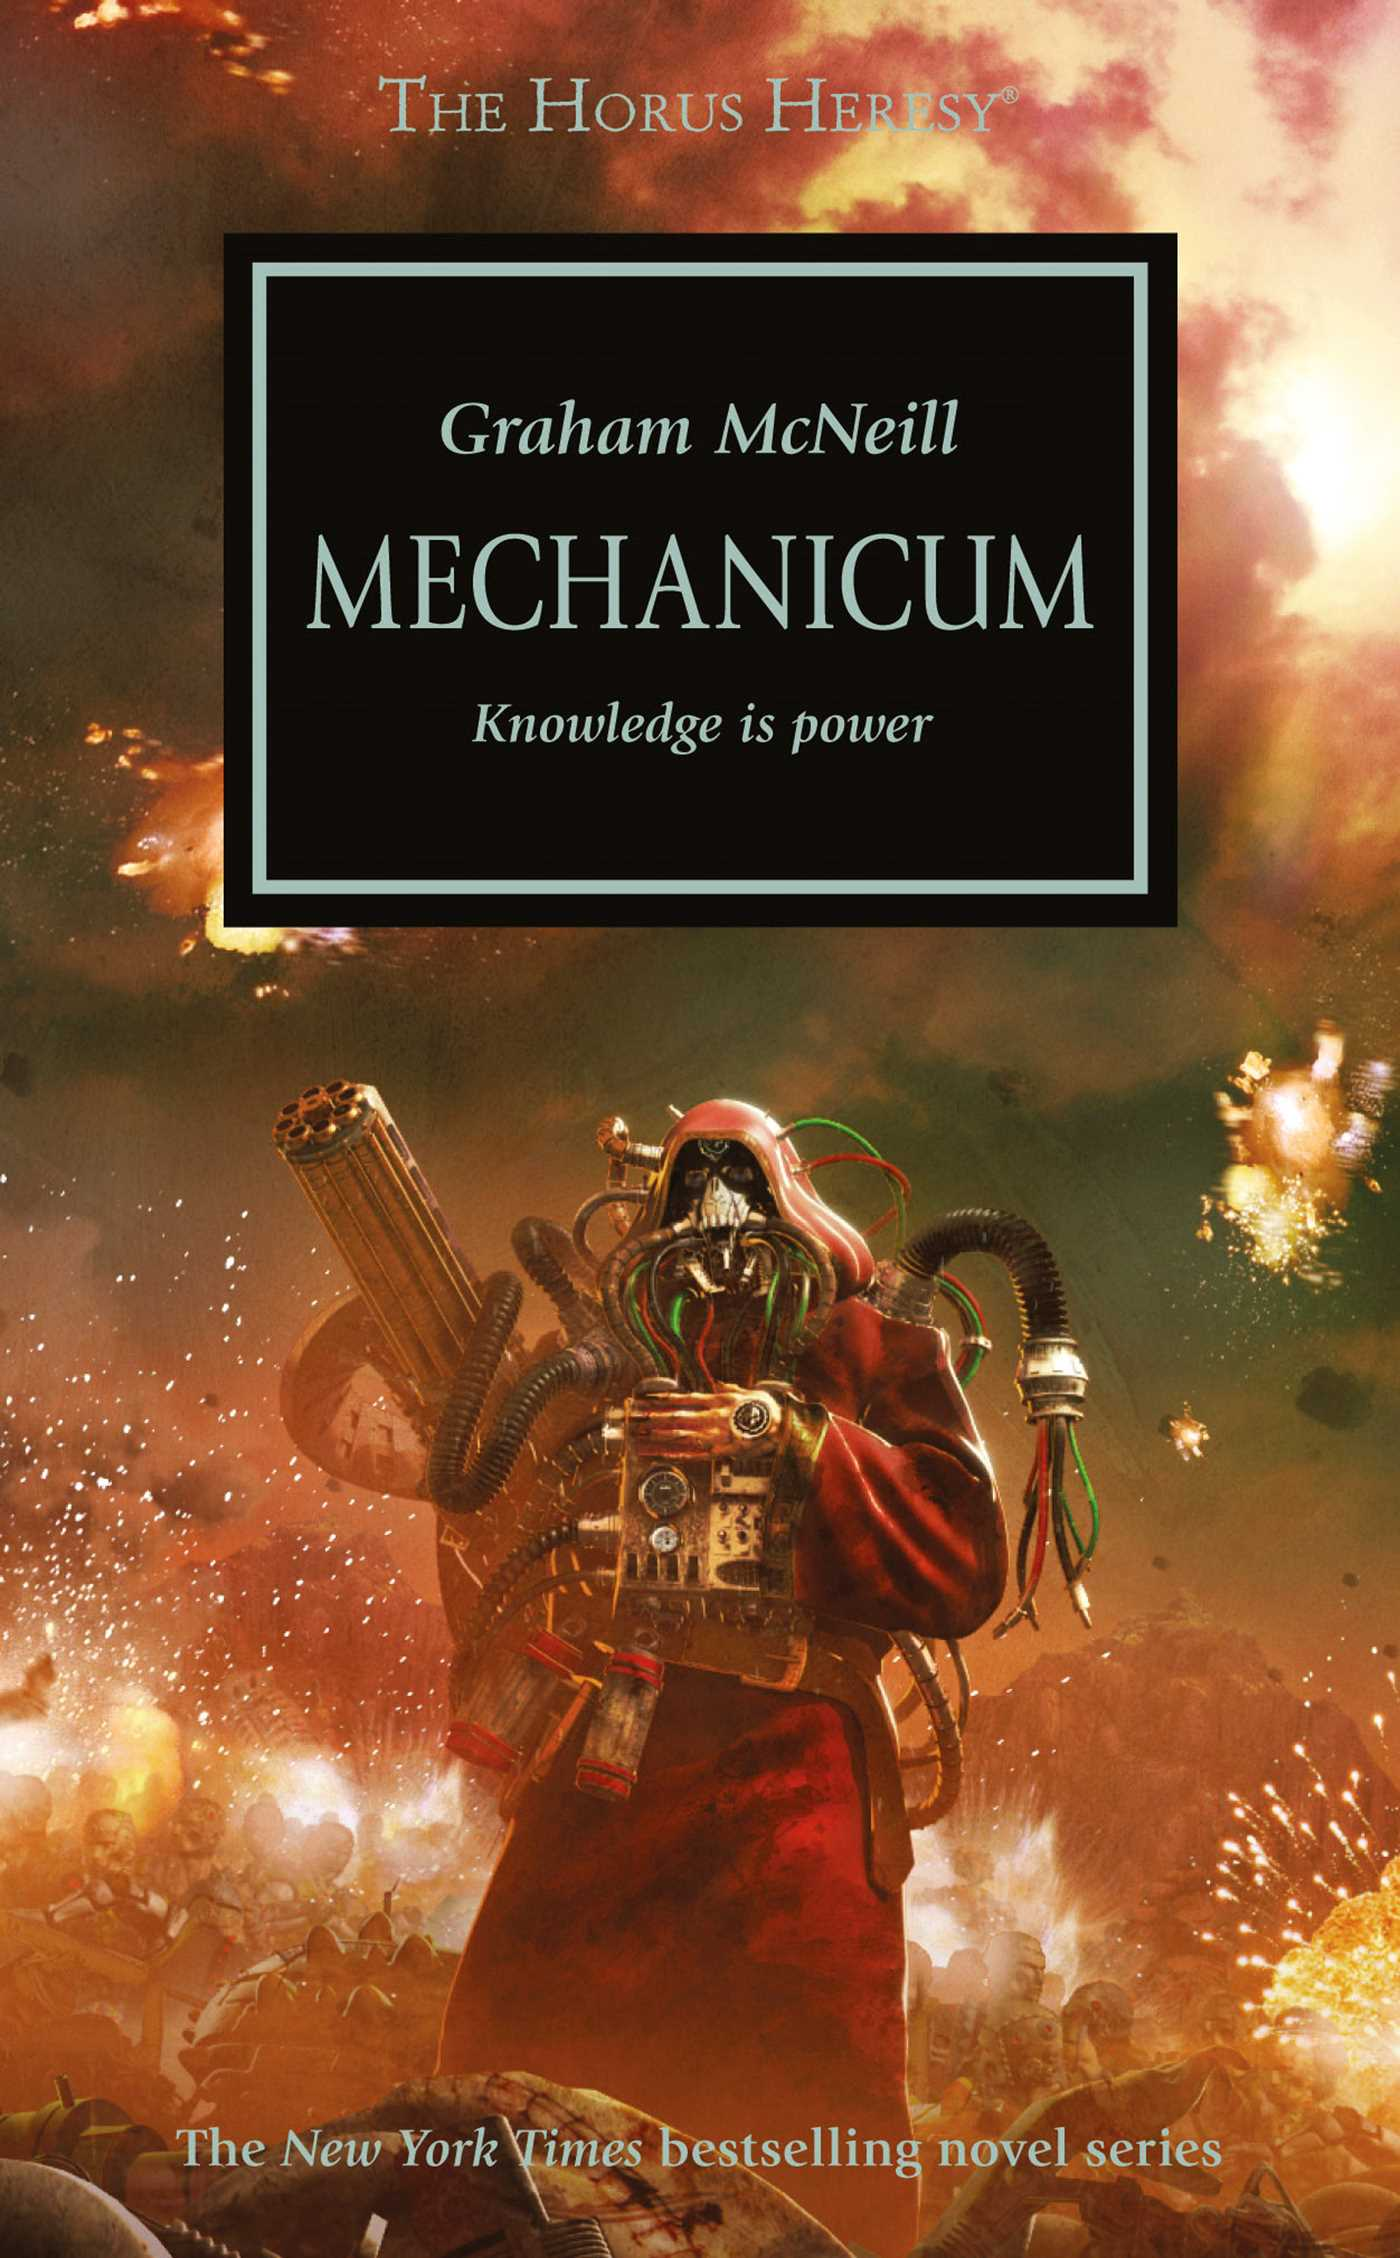 Mechanicum-9781849708173_hr